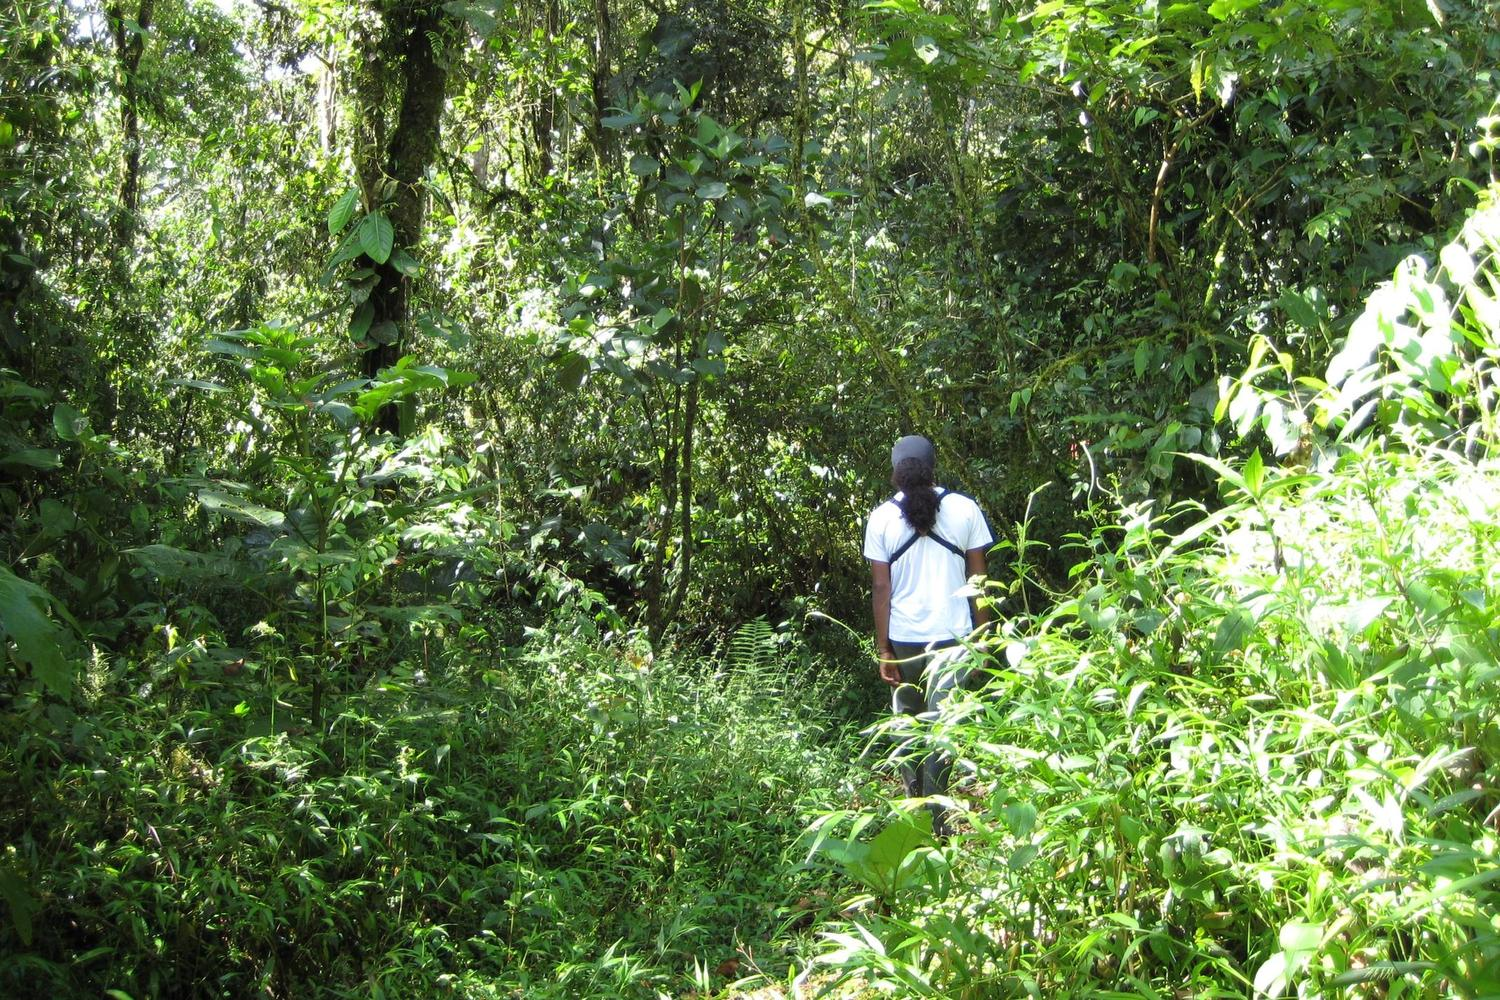 Guide leading a visit to the cloud forest of Mindo